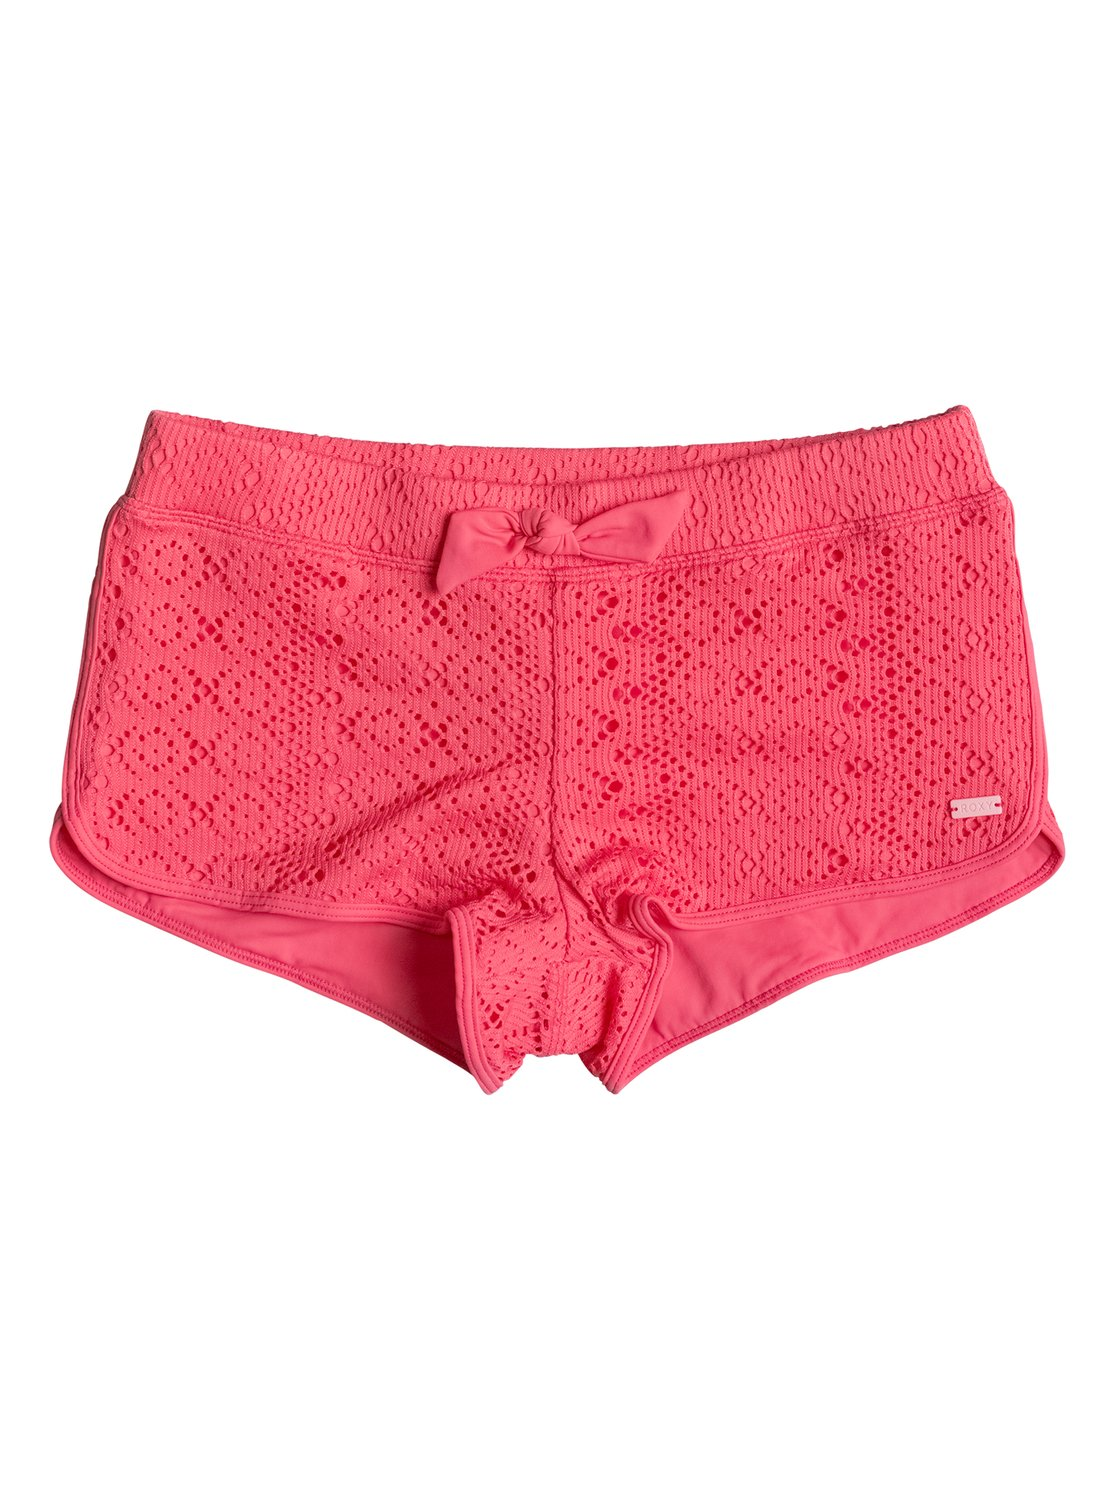 Girly ROXY - Boardshort pour Fille - Roxy